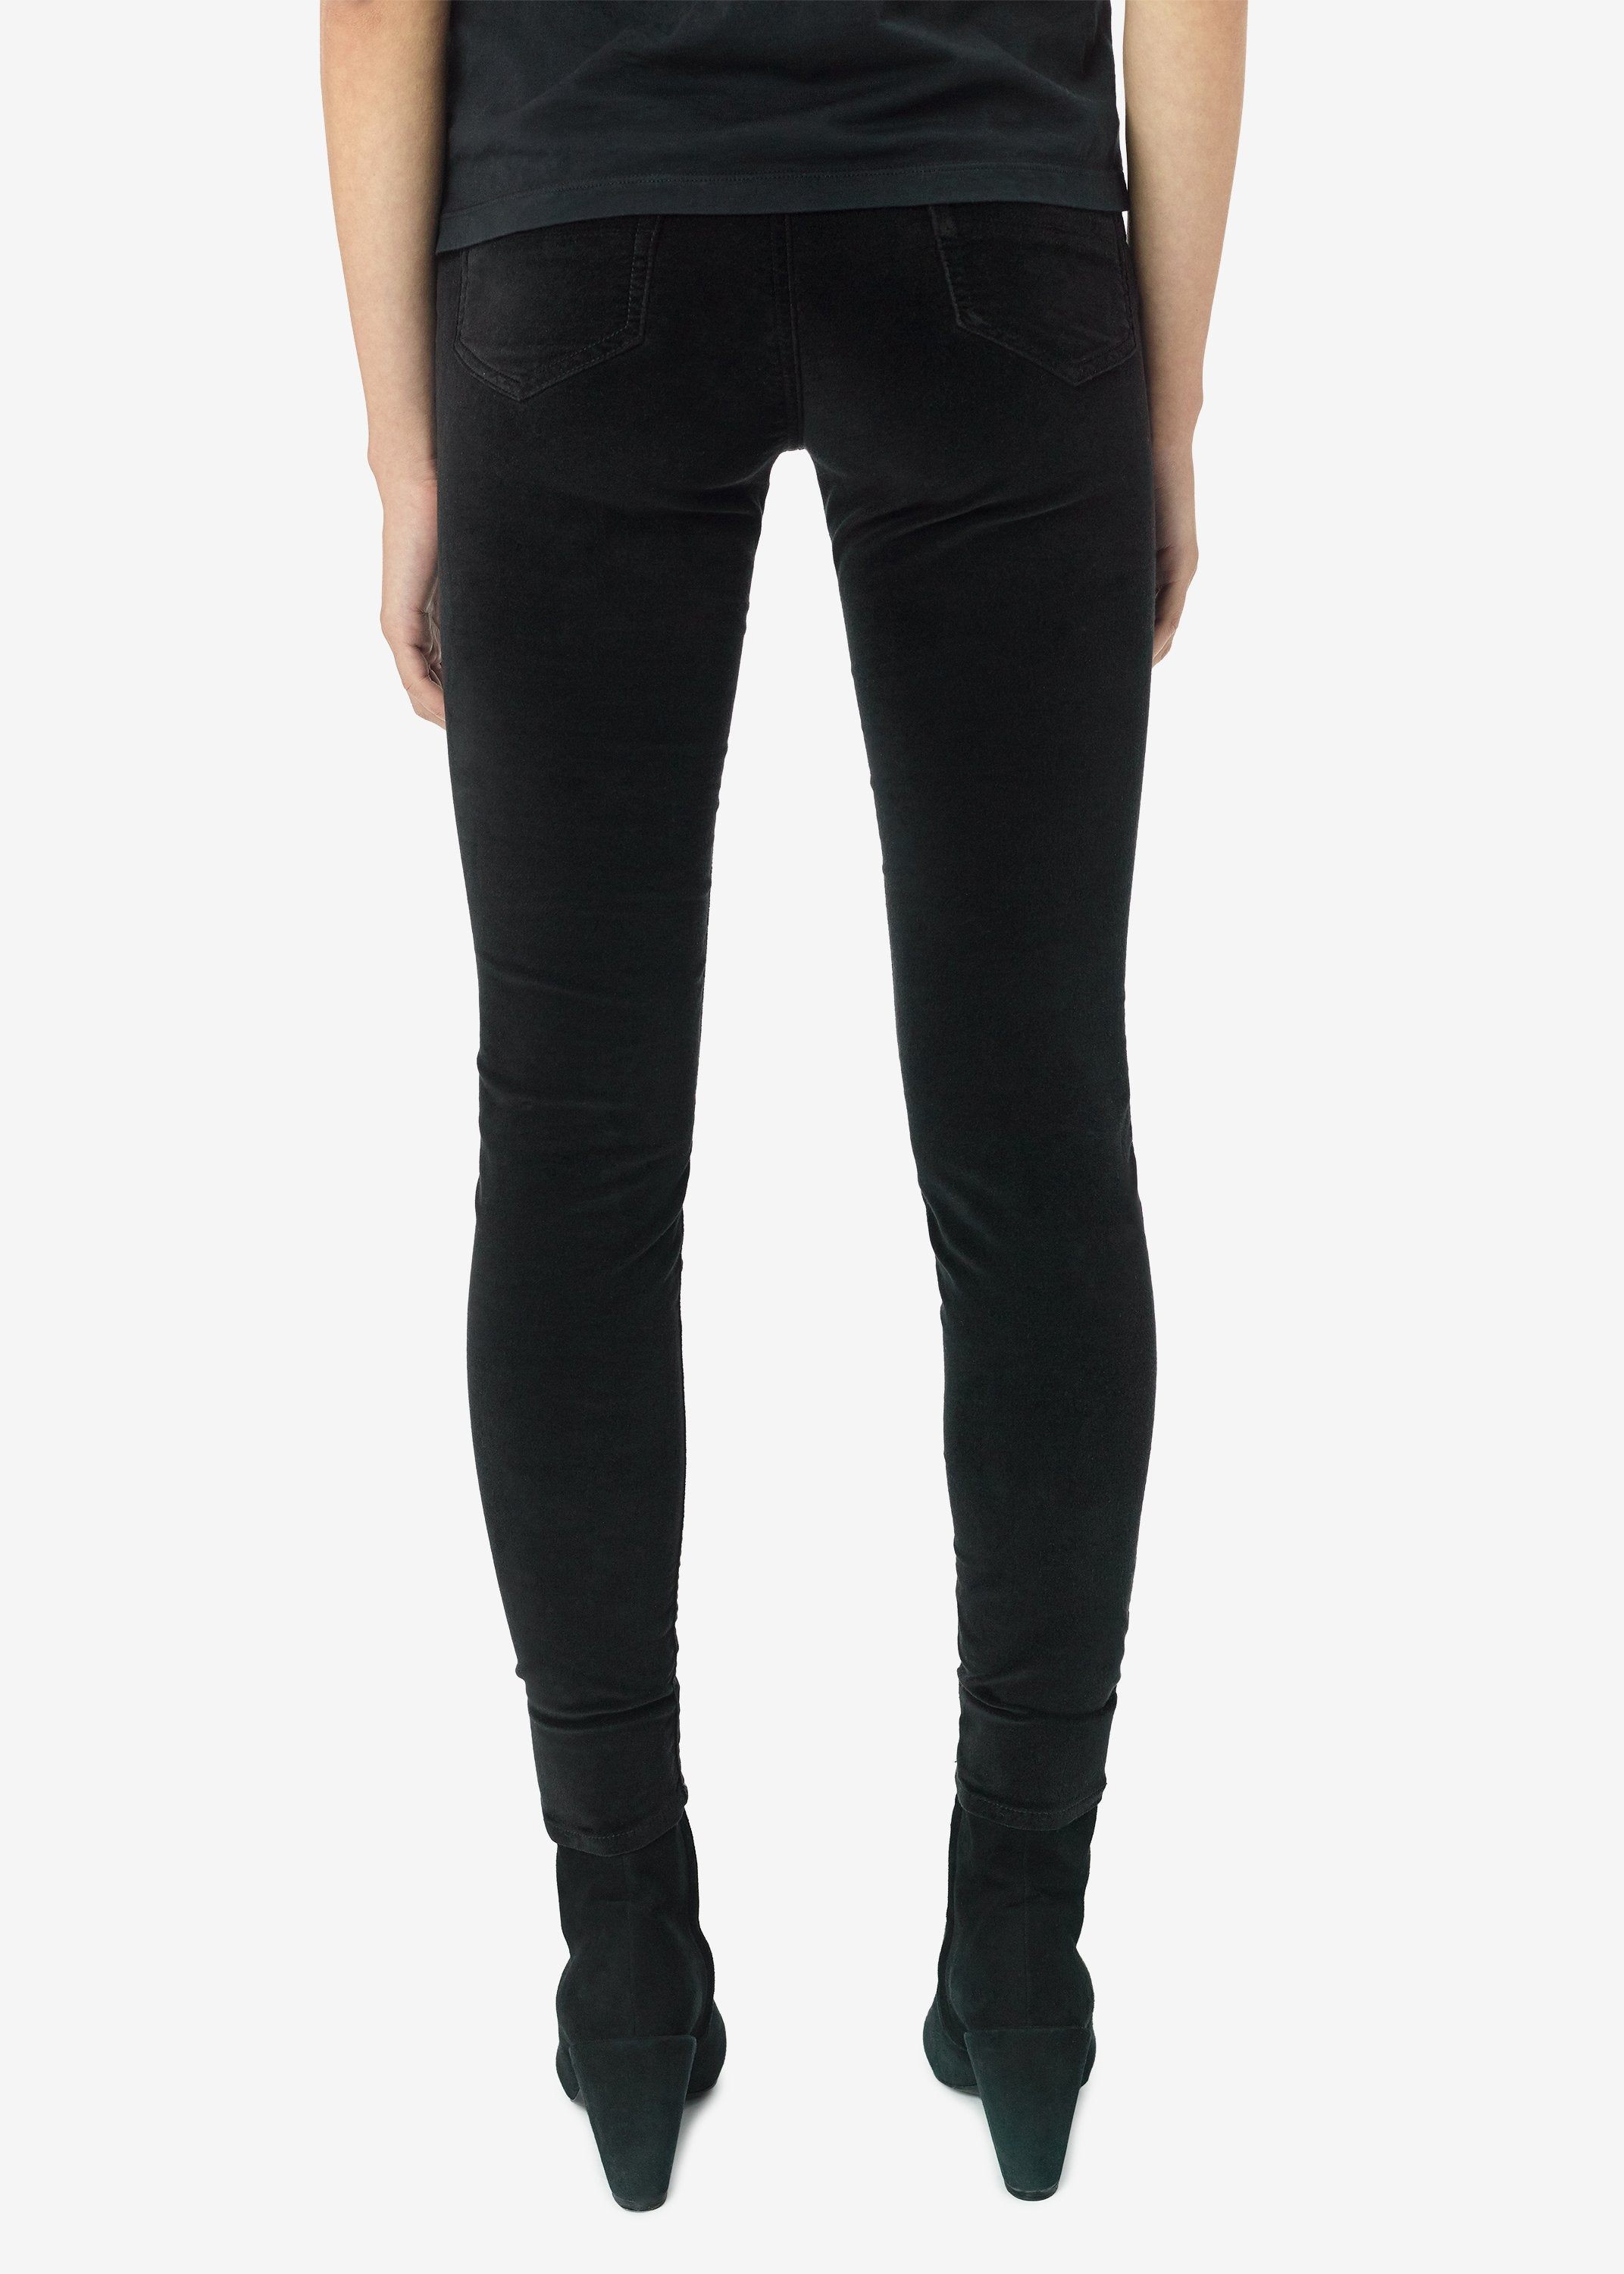 velour-skinny-stack-pants-black-image-3